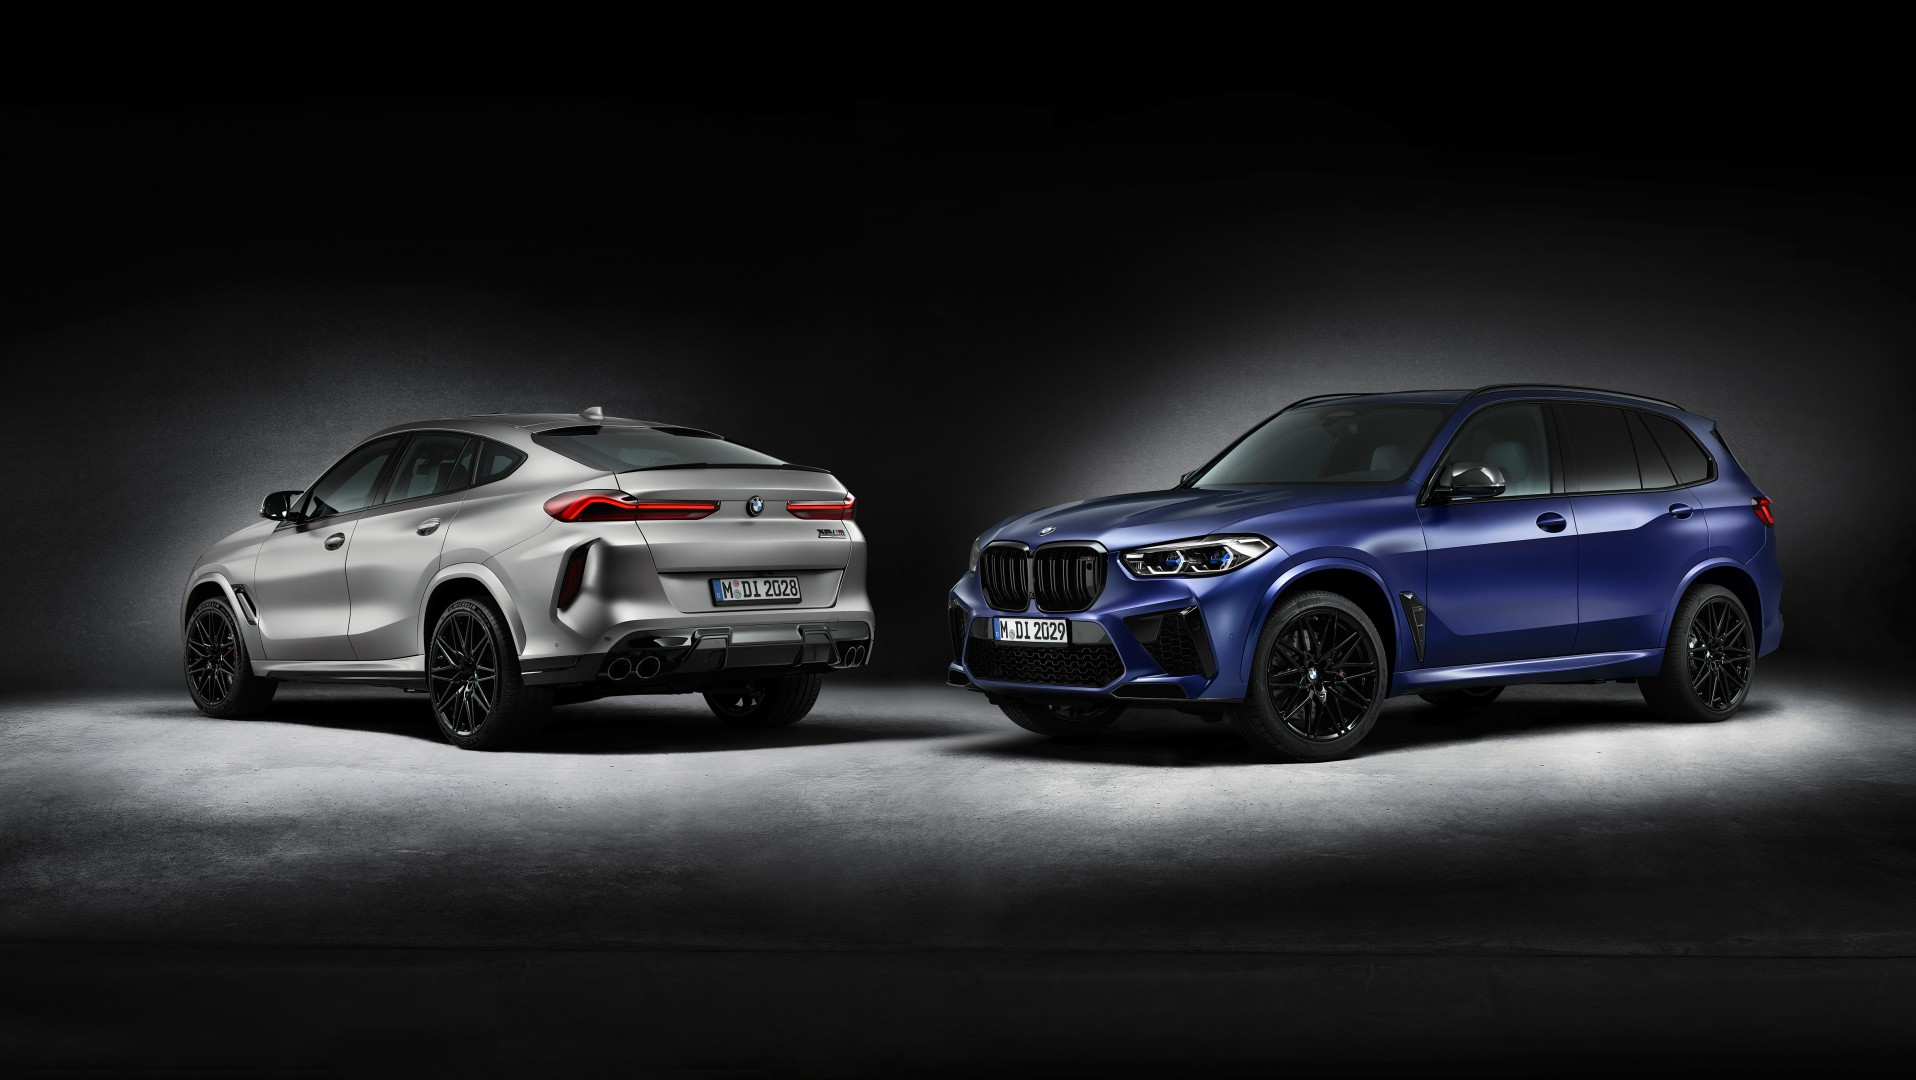 Aterrizan (tarde) los BMW X5 y X6 M Competition First Edition